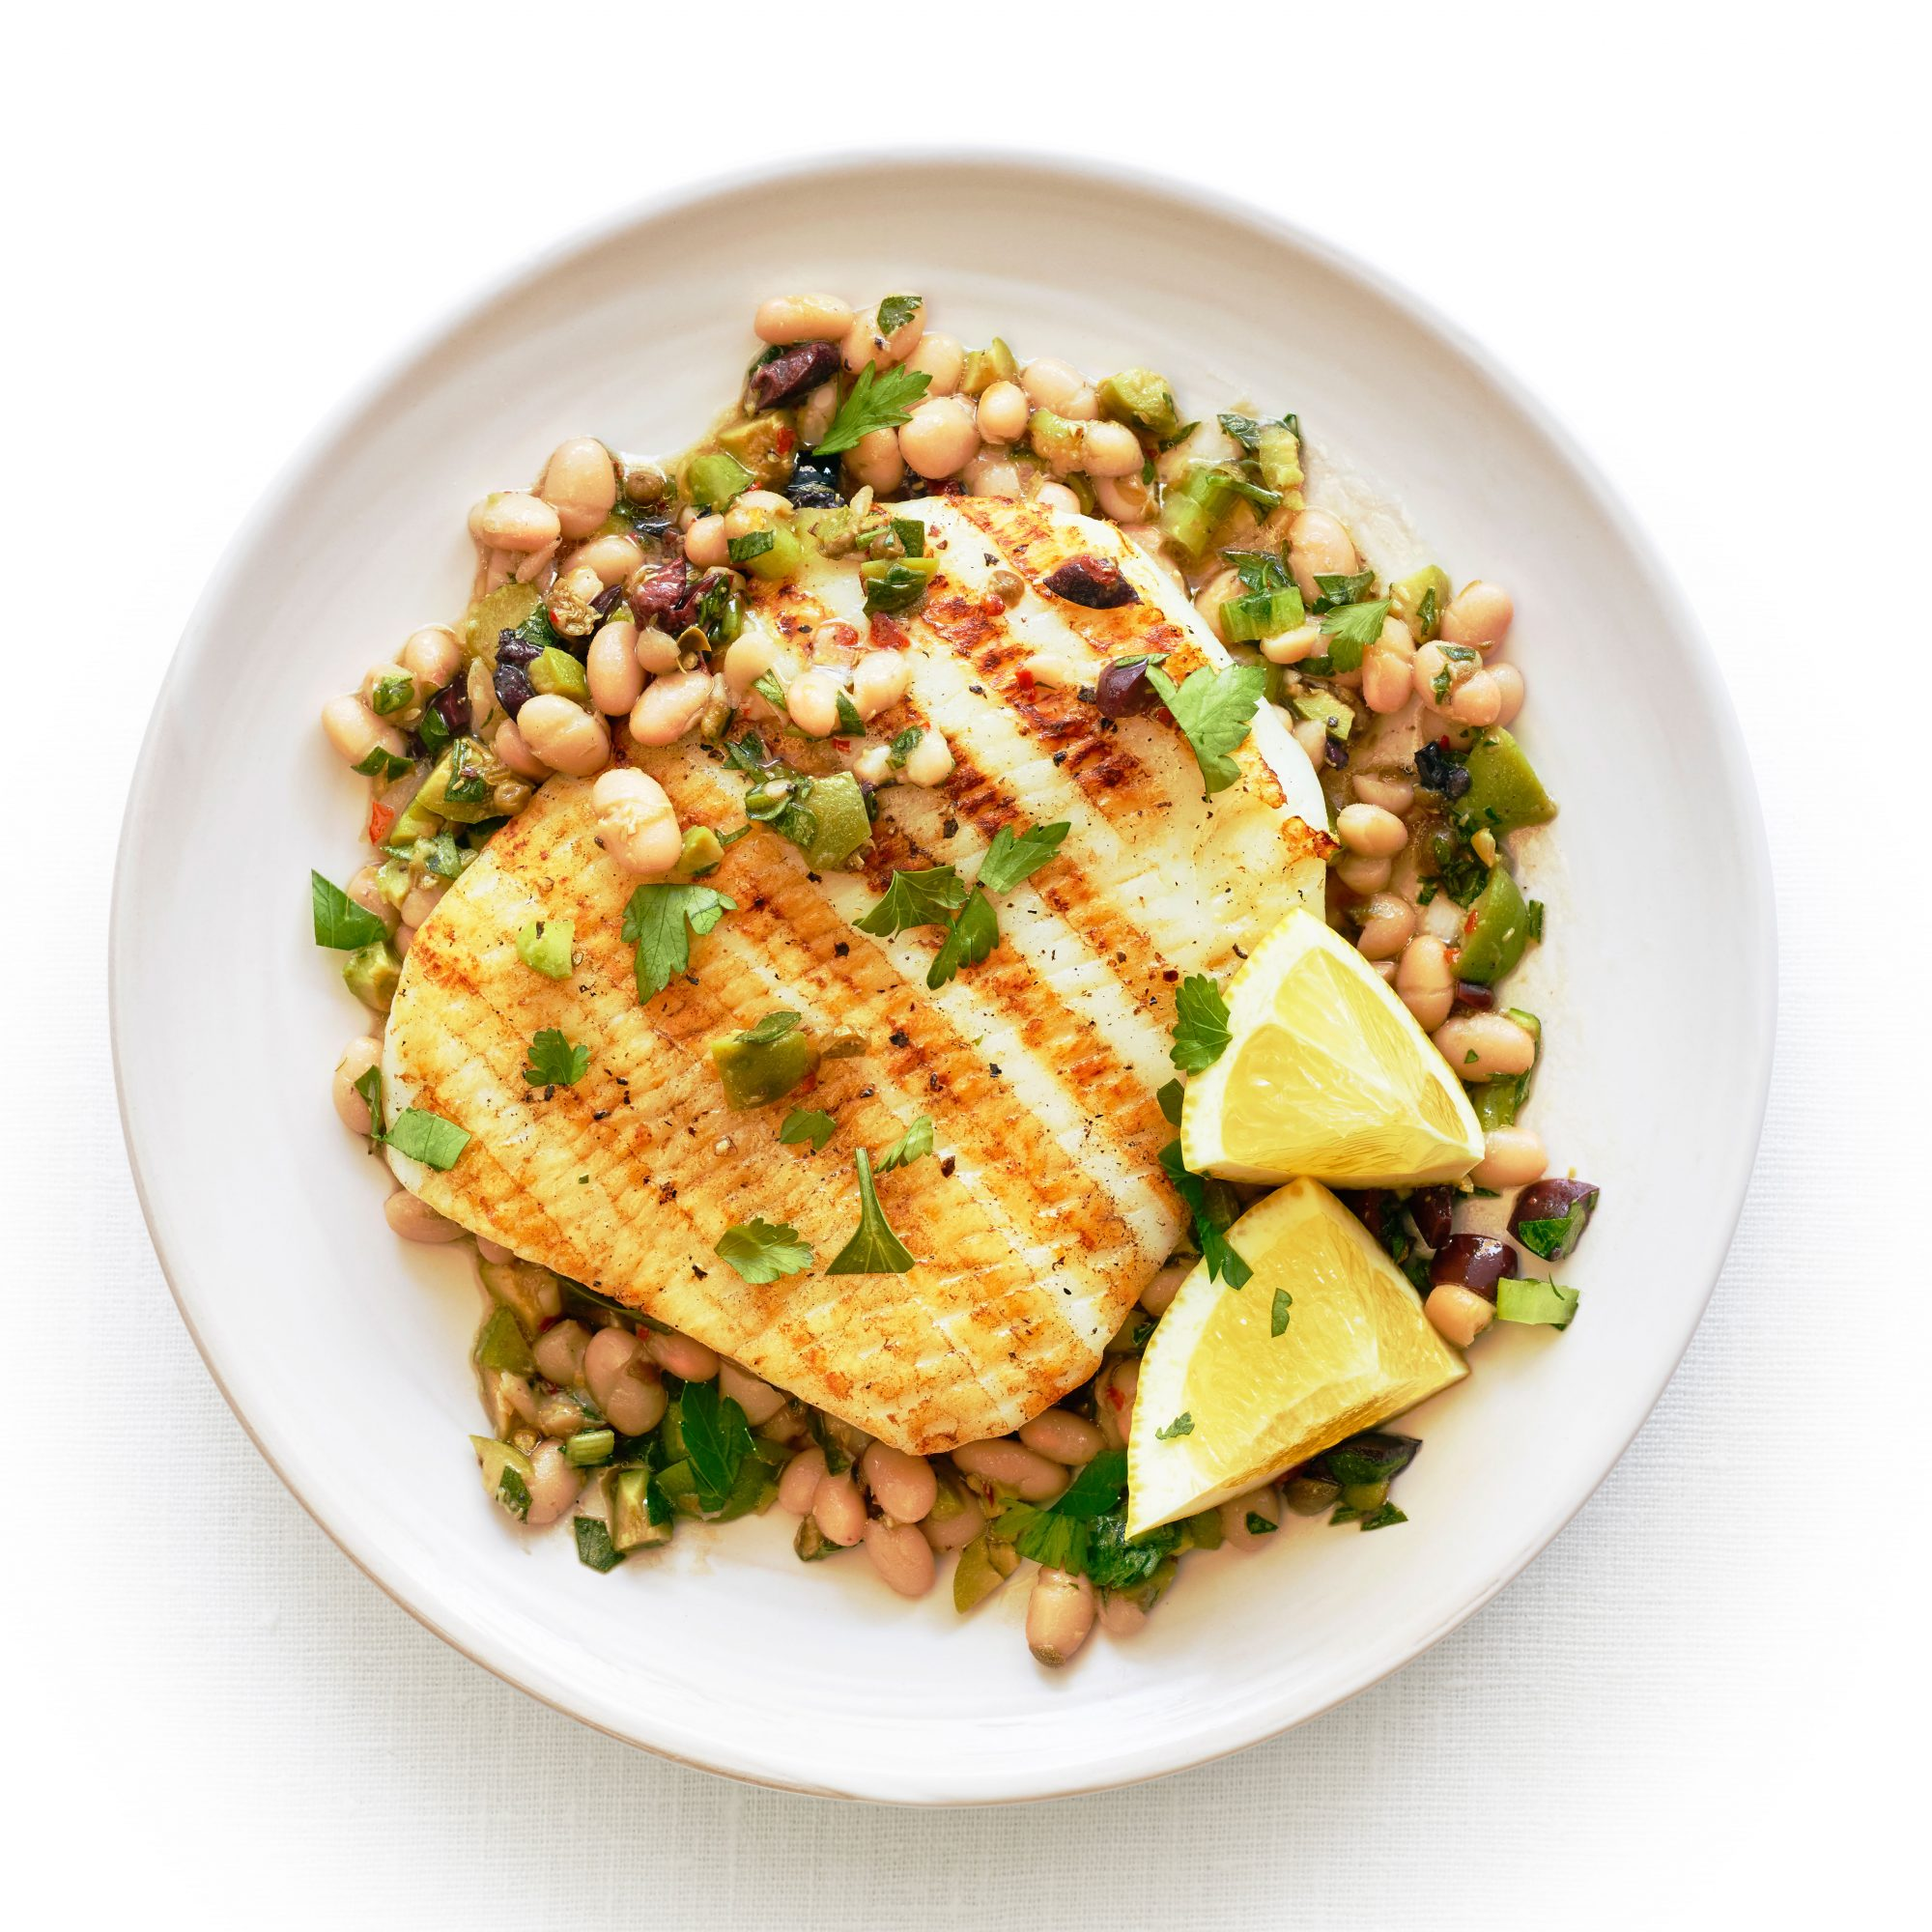 Grilled Calamari Steaks with Olive and Bean Salad image